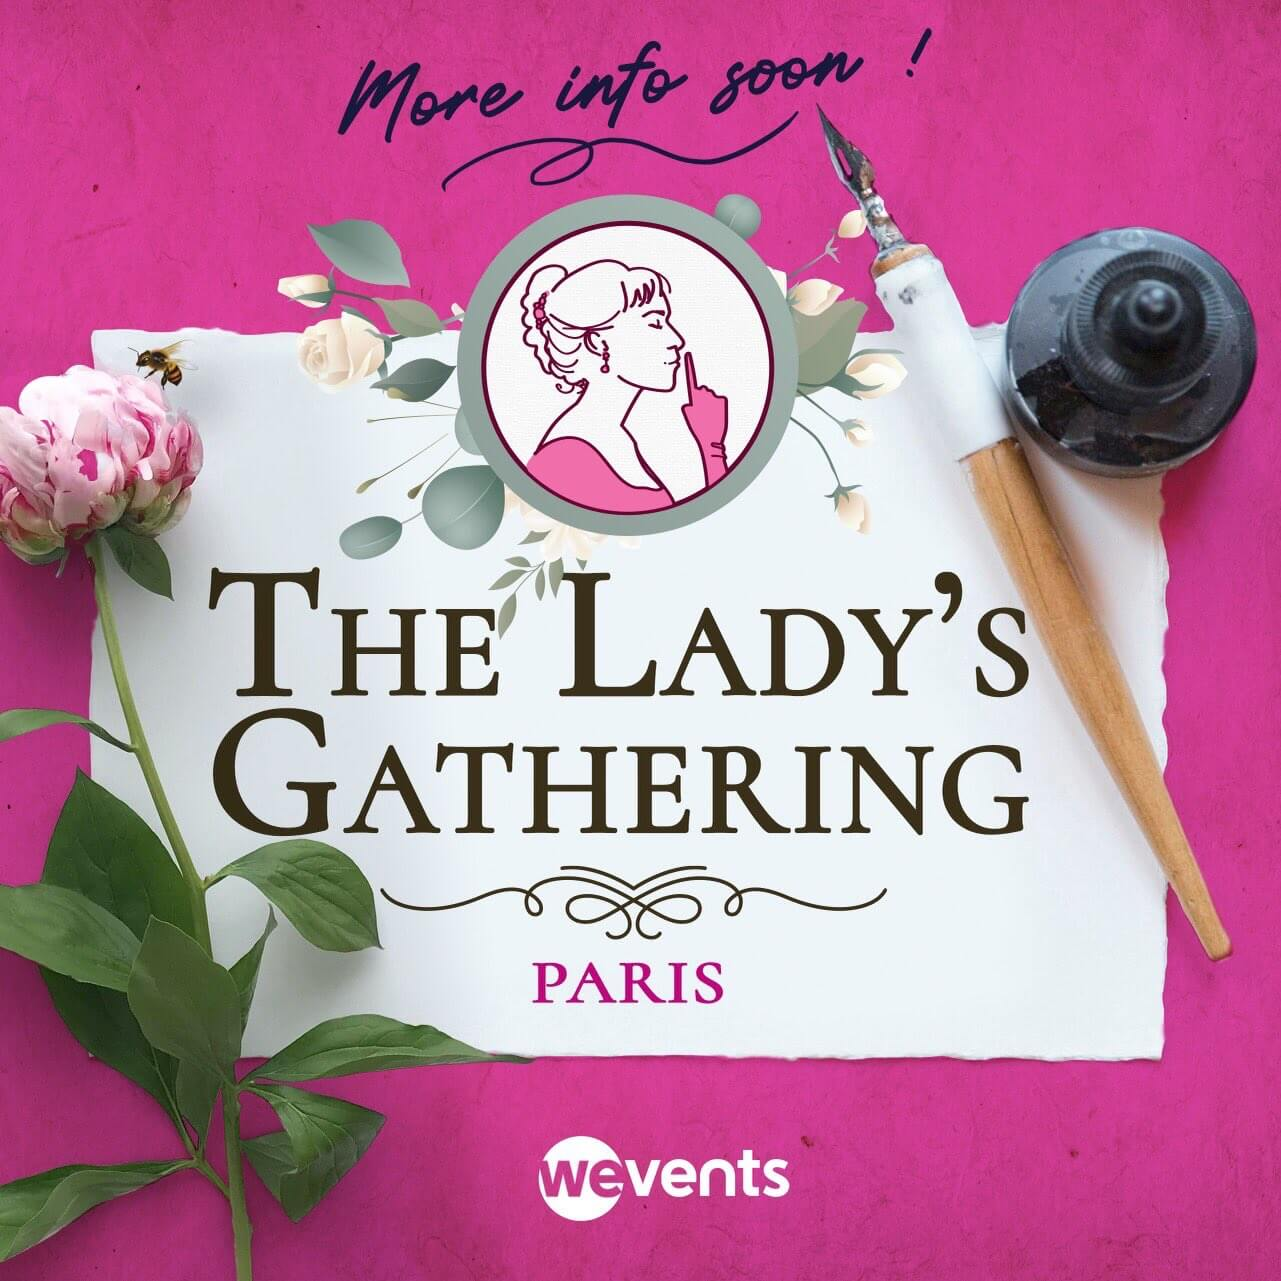 The Lady's Gathering